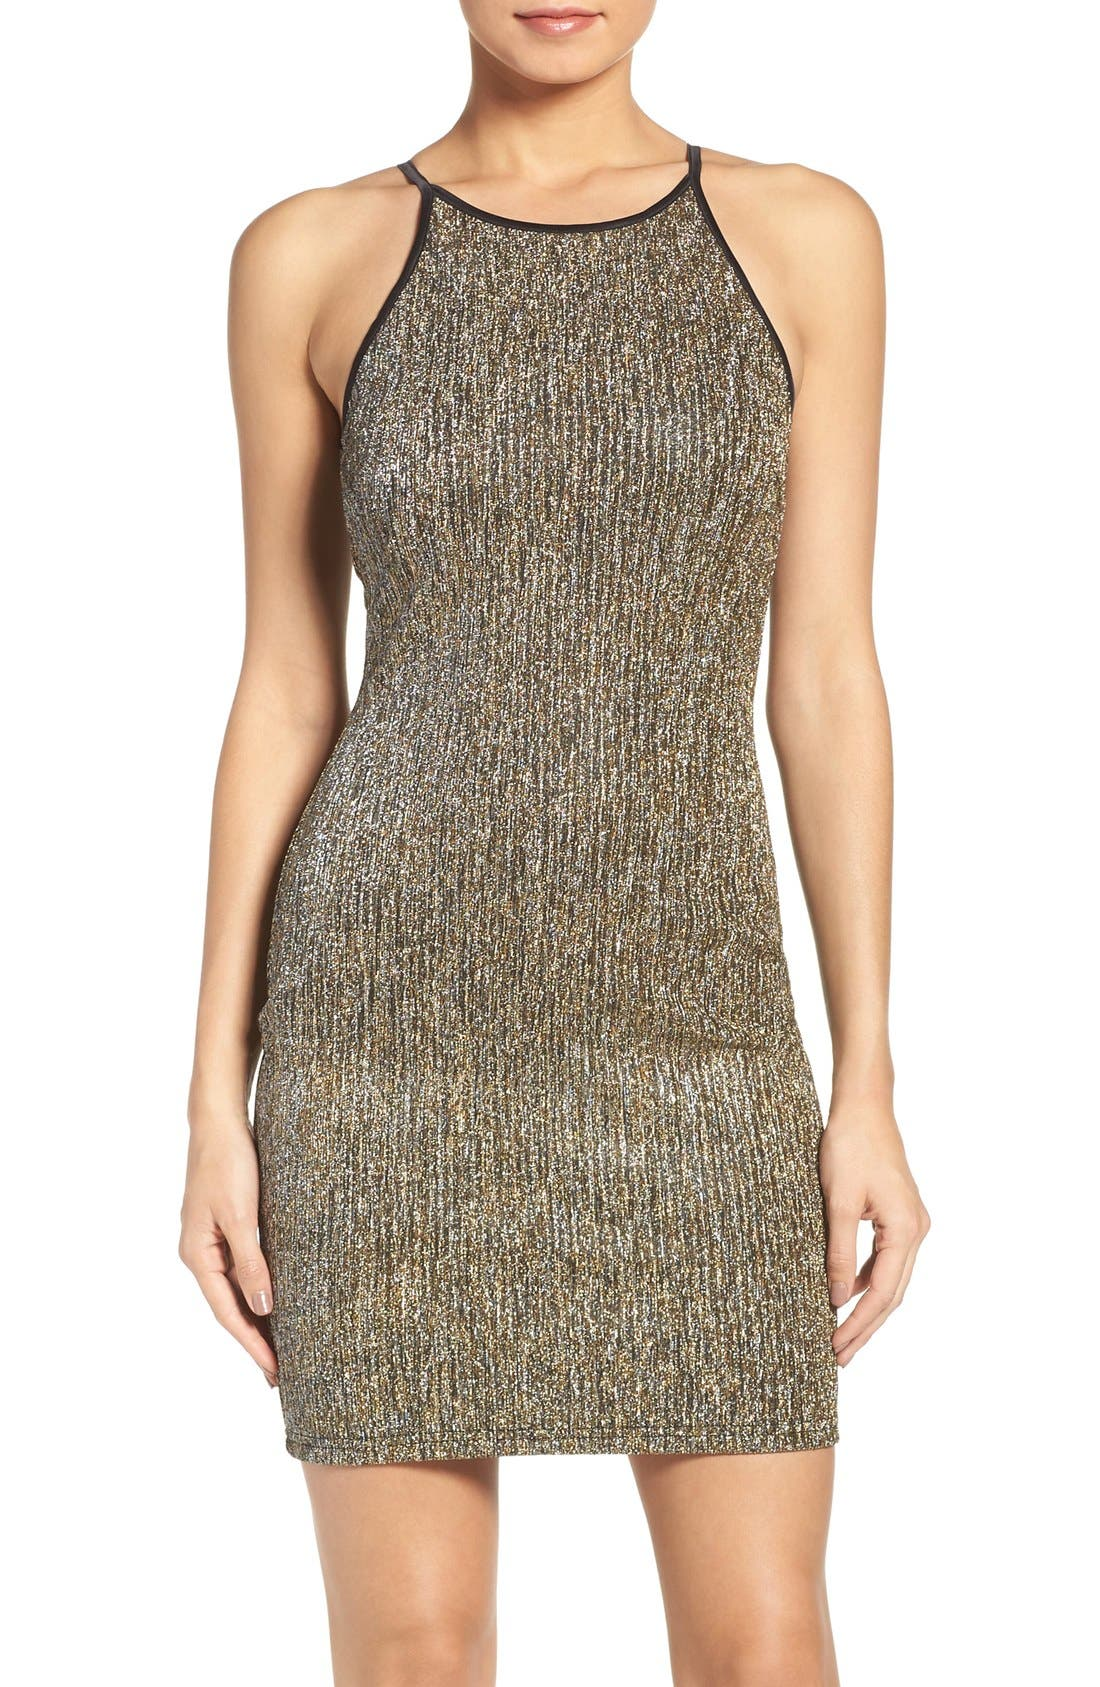 Alternate Image 1 Selected - Gerylin Metallic Knit Body-Con Dress